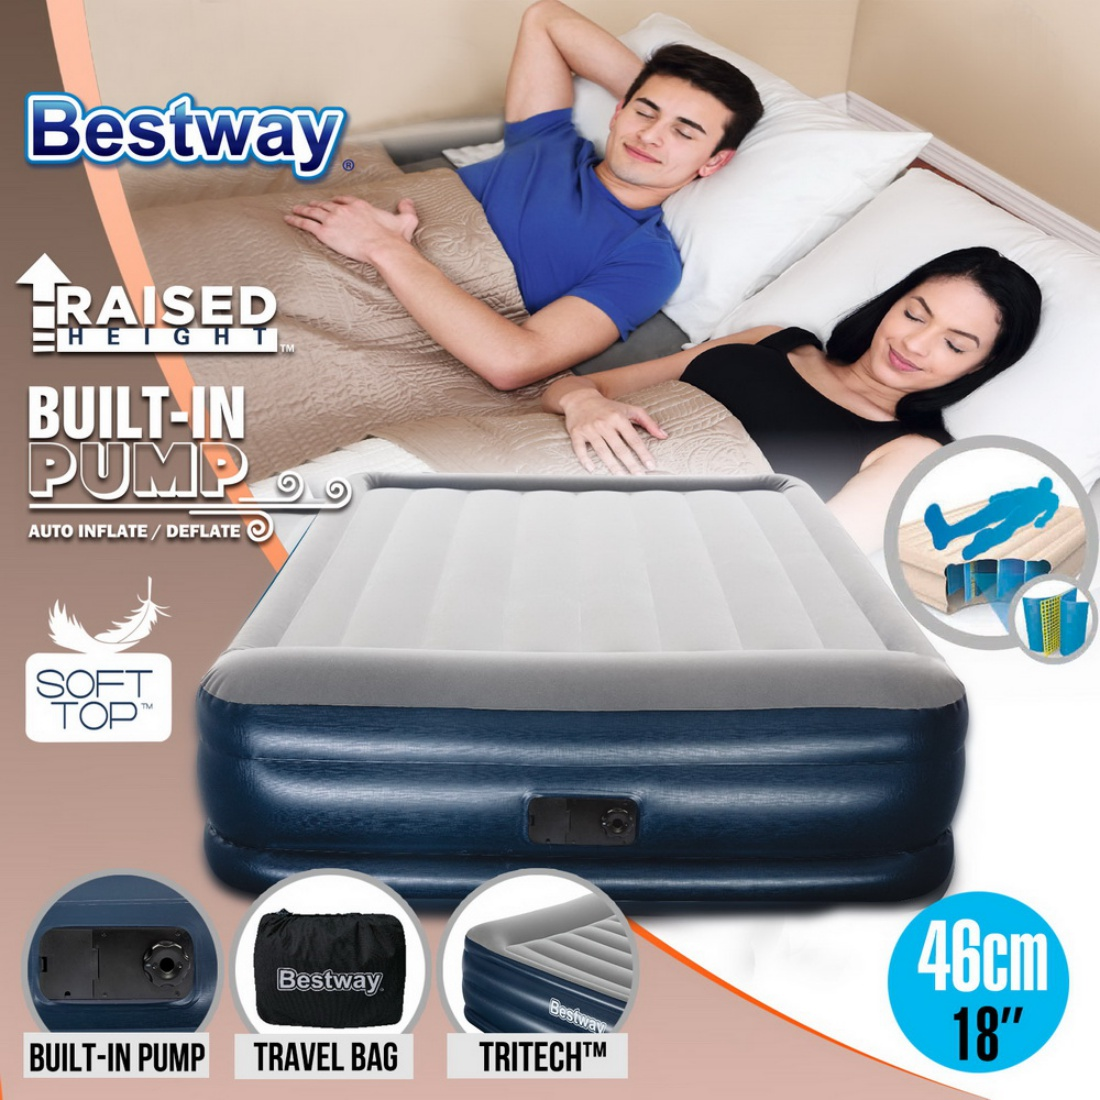 Bestway Portable Queen Inflatable Air Bed Blow Up Mattress Built In Pump Camping